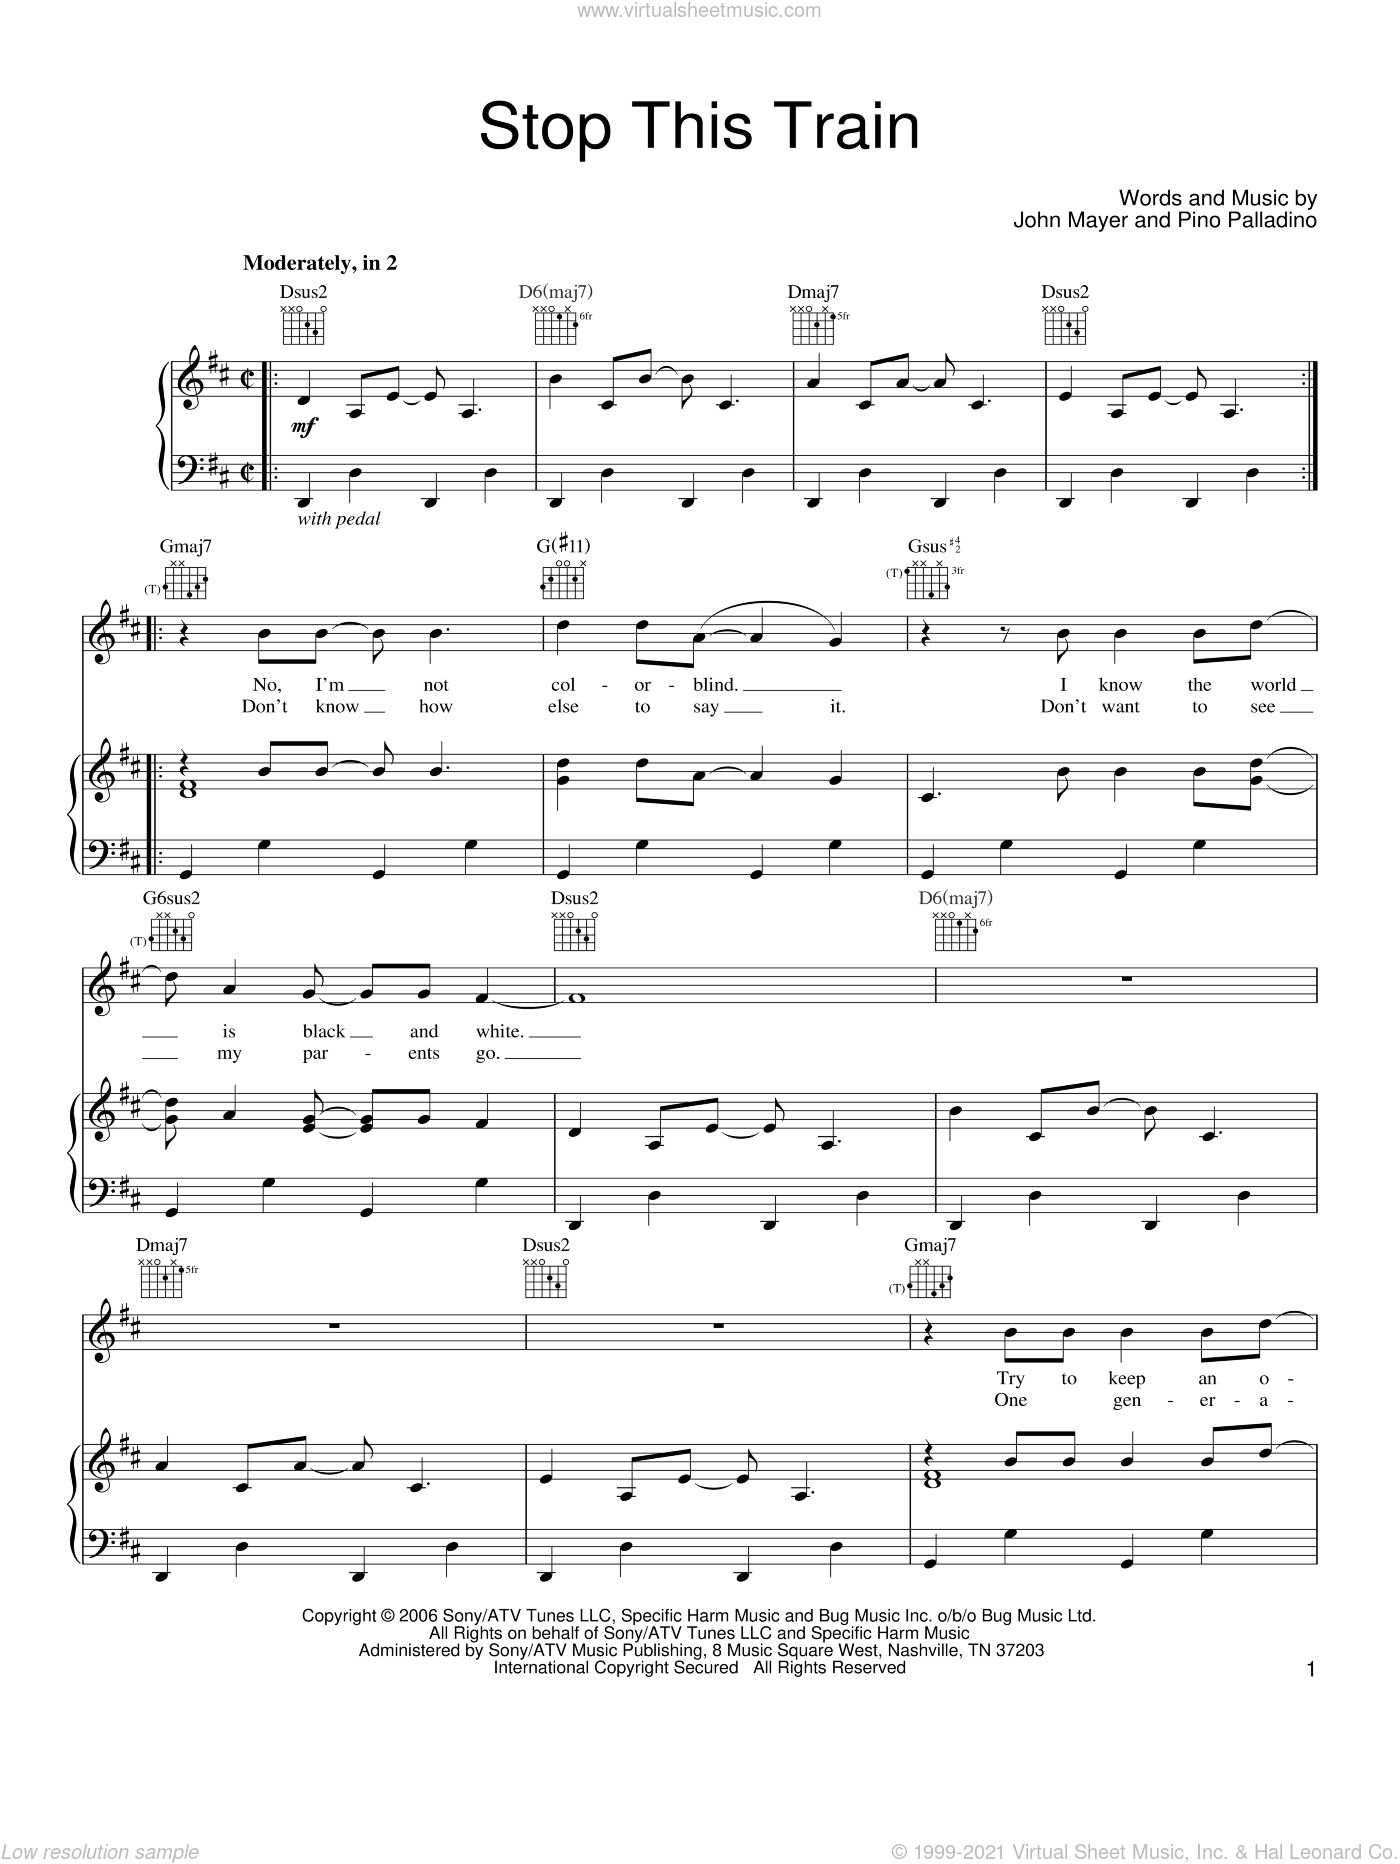 Stop This Train sheet music for voice, piano or guitar by John Mayer and Pino Palladino, intermediate skill level